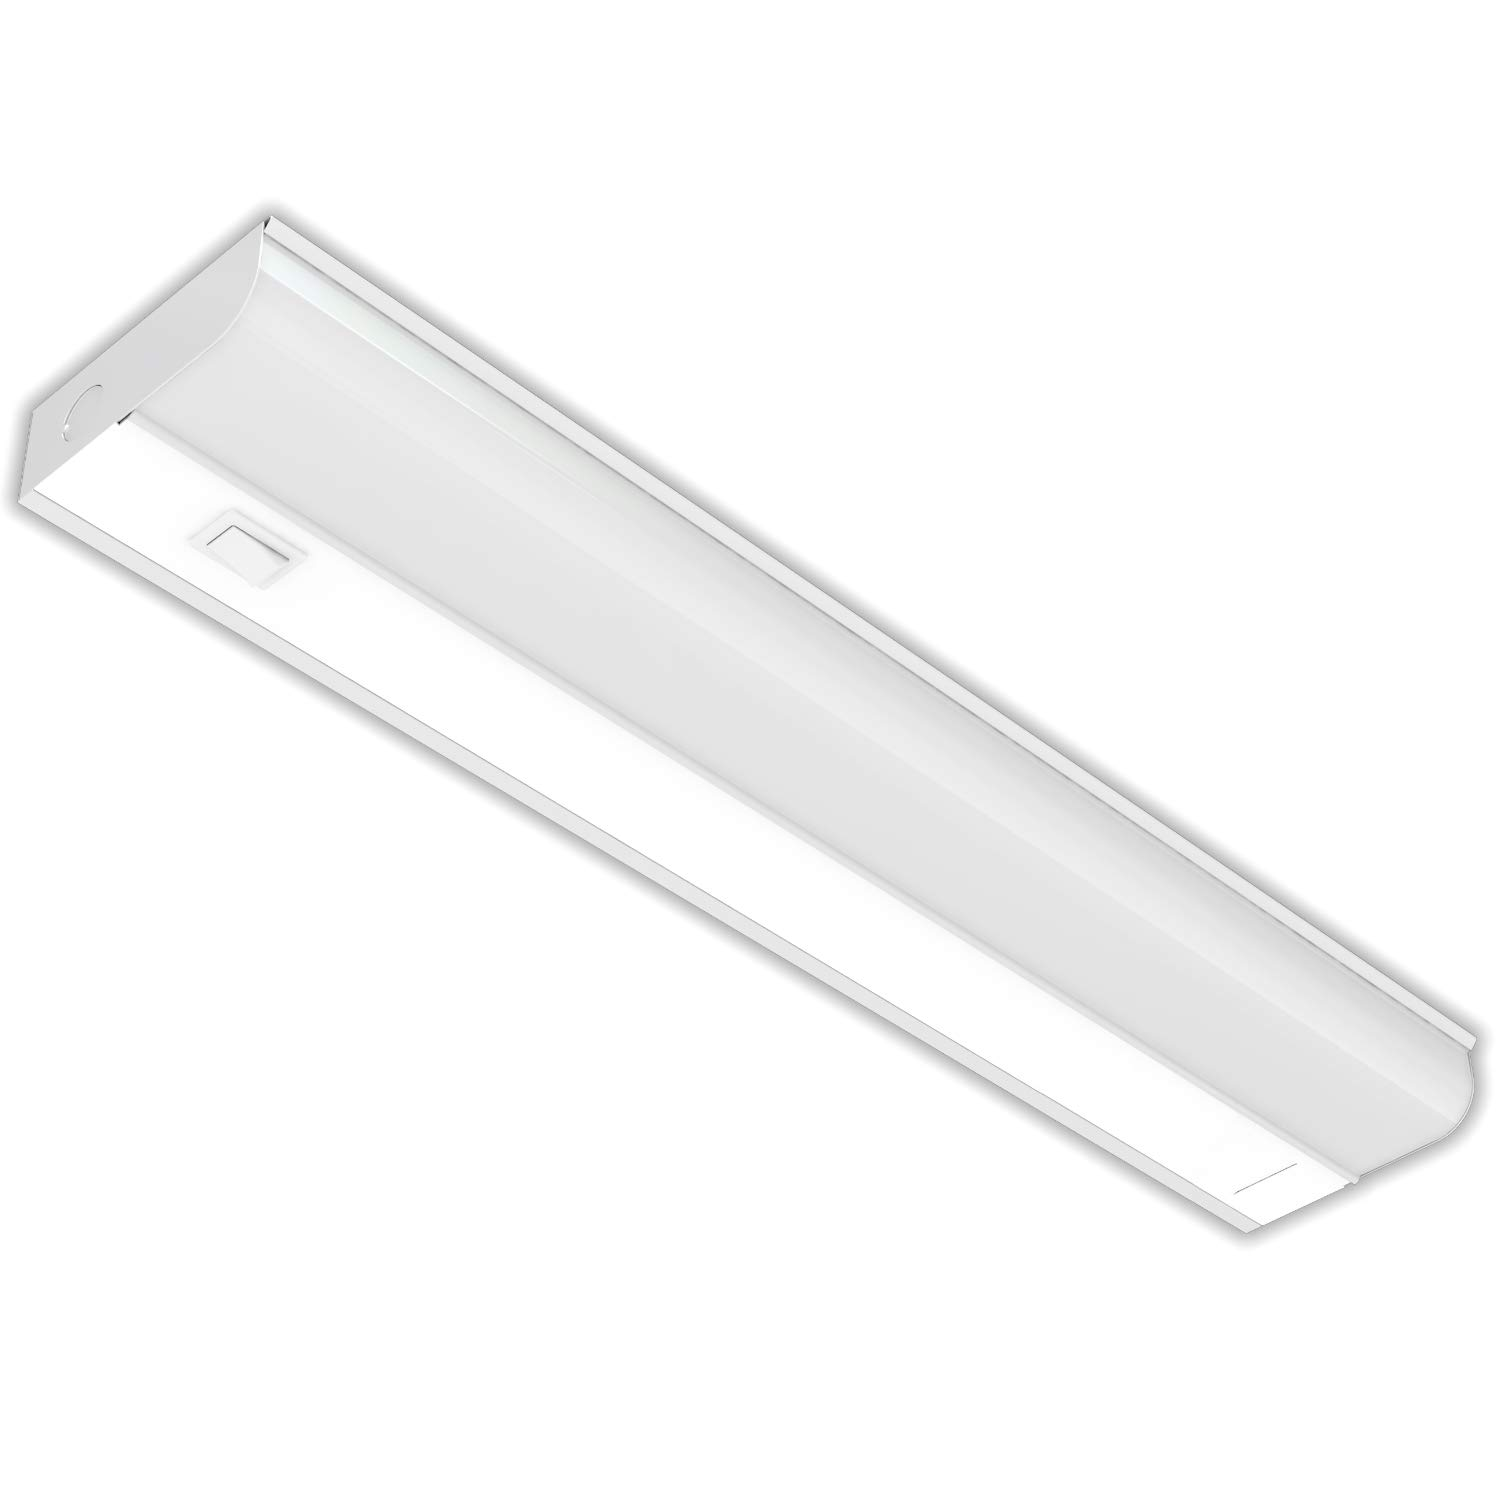 Hardwired LED Under Cabinet Task Lighting - 12 Watt, 18'', Dimmable, CRI>90, 3000K (Warm White), Wide Body, Long Lasting Metal Base with Frost Lens